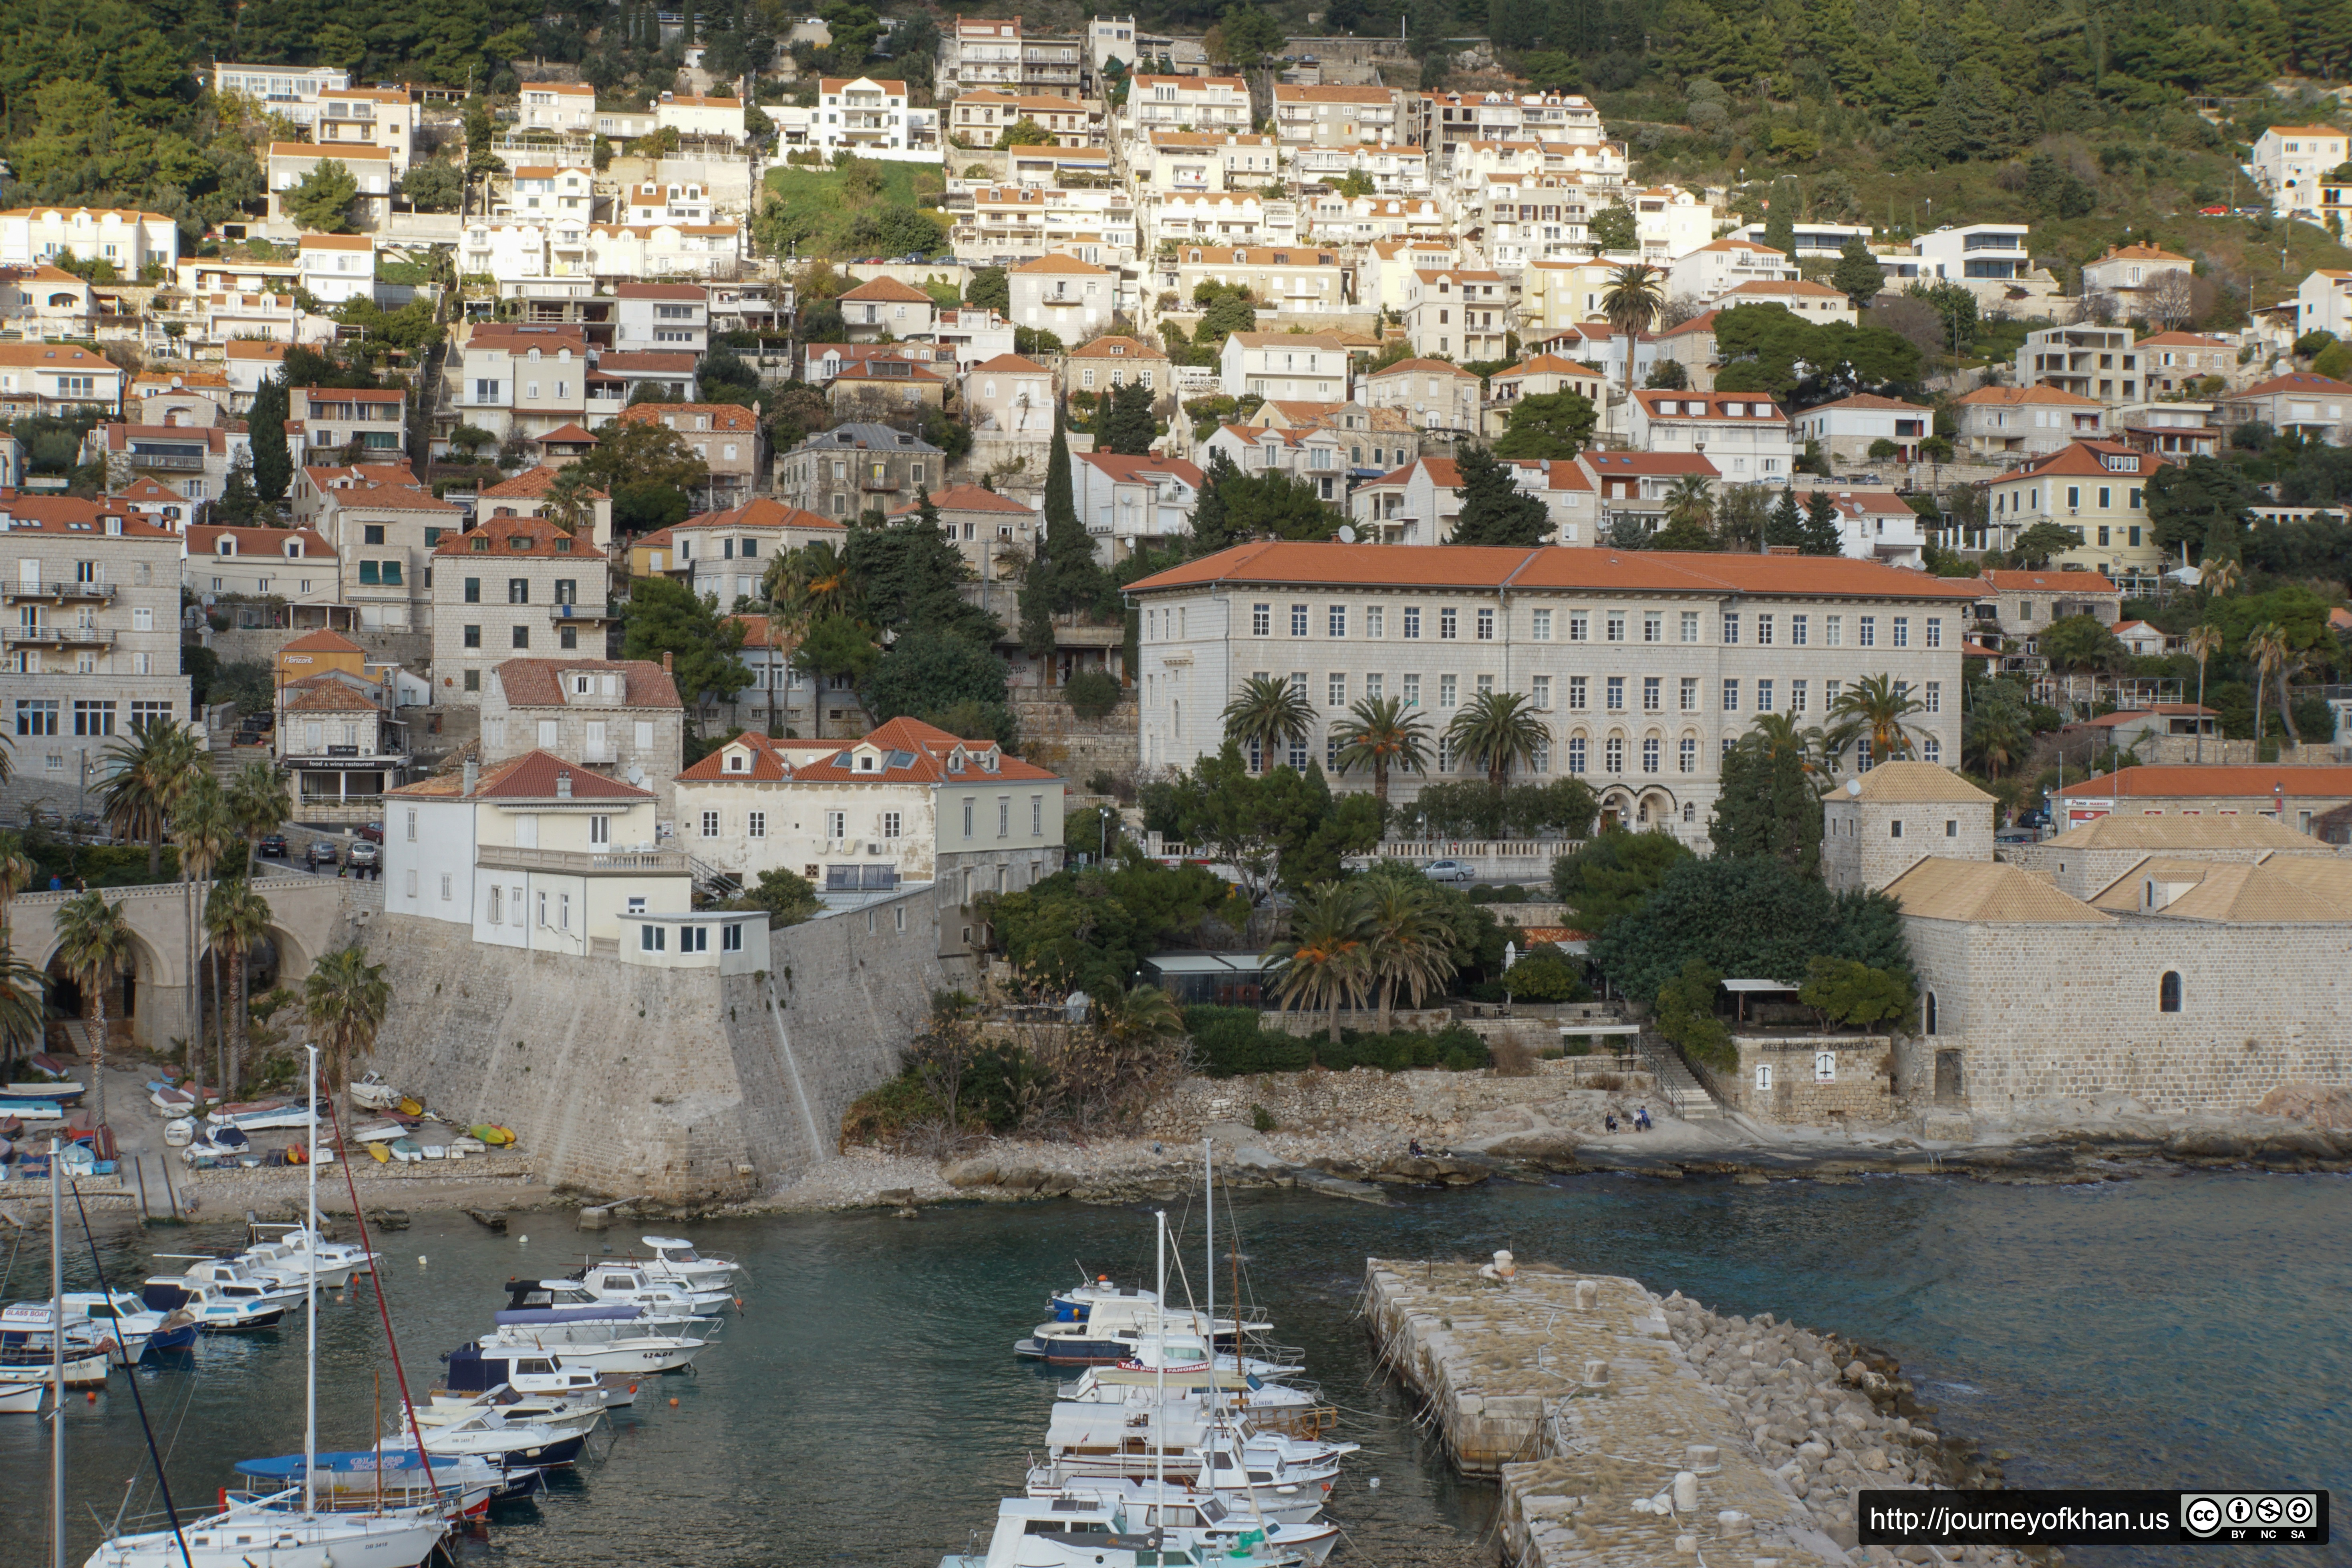 Houses and Boats in Dubrovnik (High Resolution)